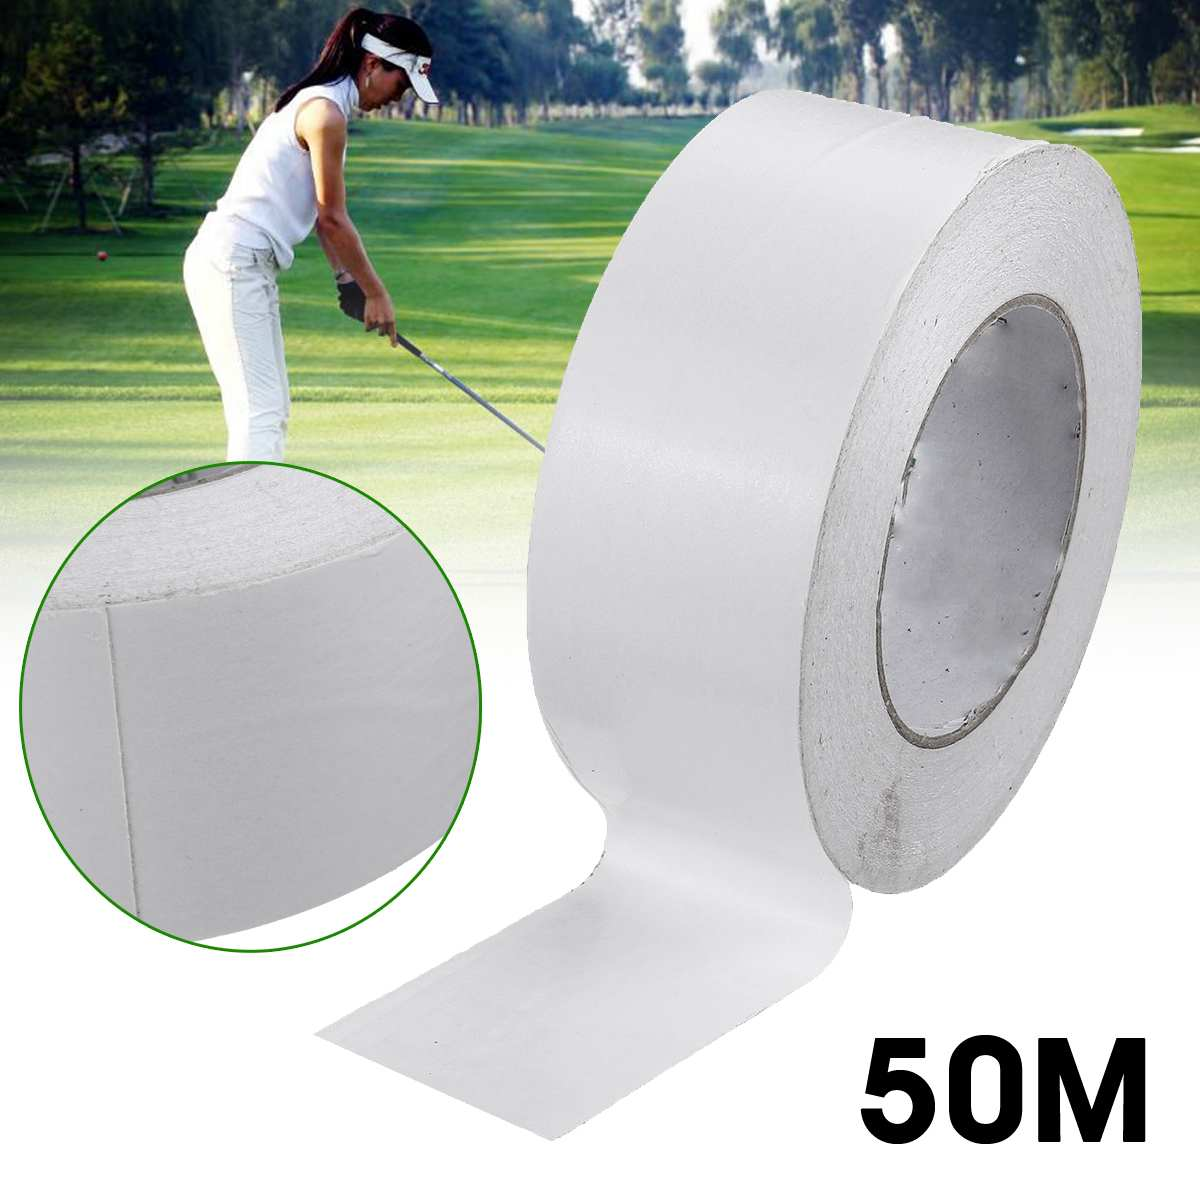 1Roll 50M Professional Golf Grips Double Sided Tape Clubs/Putter/Wedge Tape Premium Easy Peel Golf Regripping Accessories